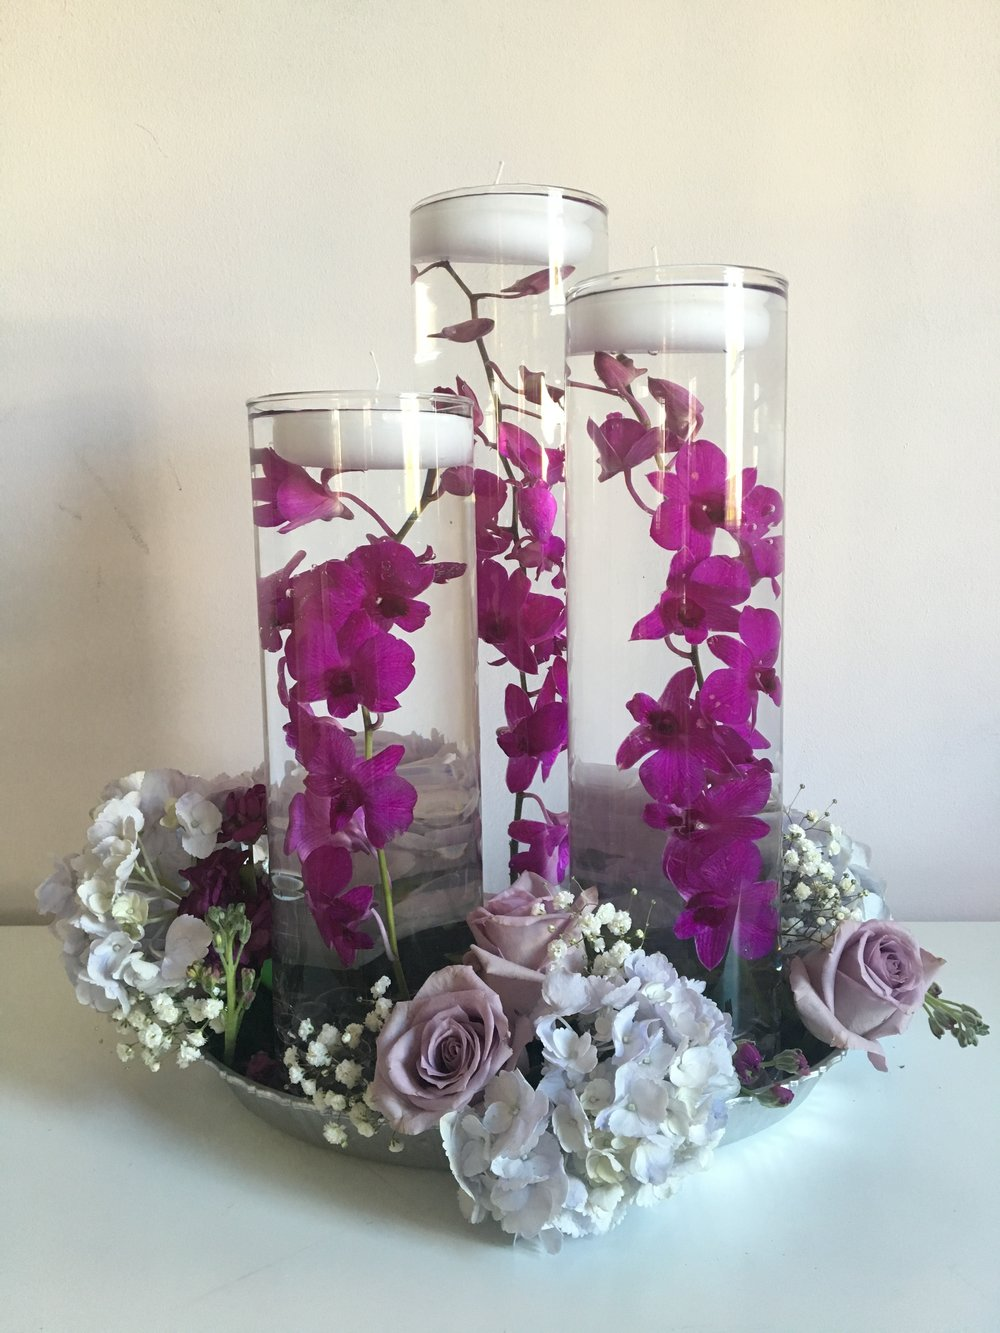 Evelisa Floral & Design: Floating candle arrangement